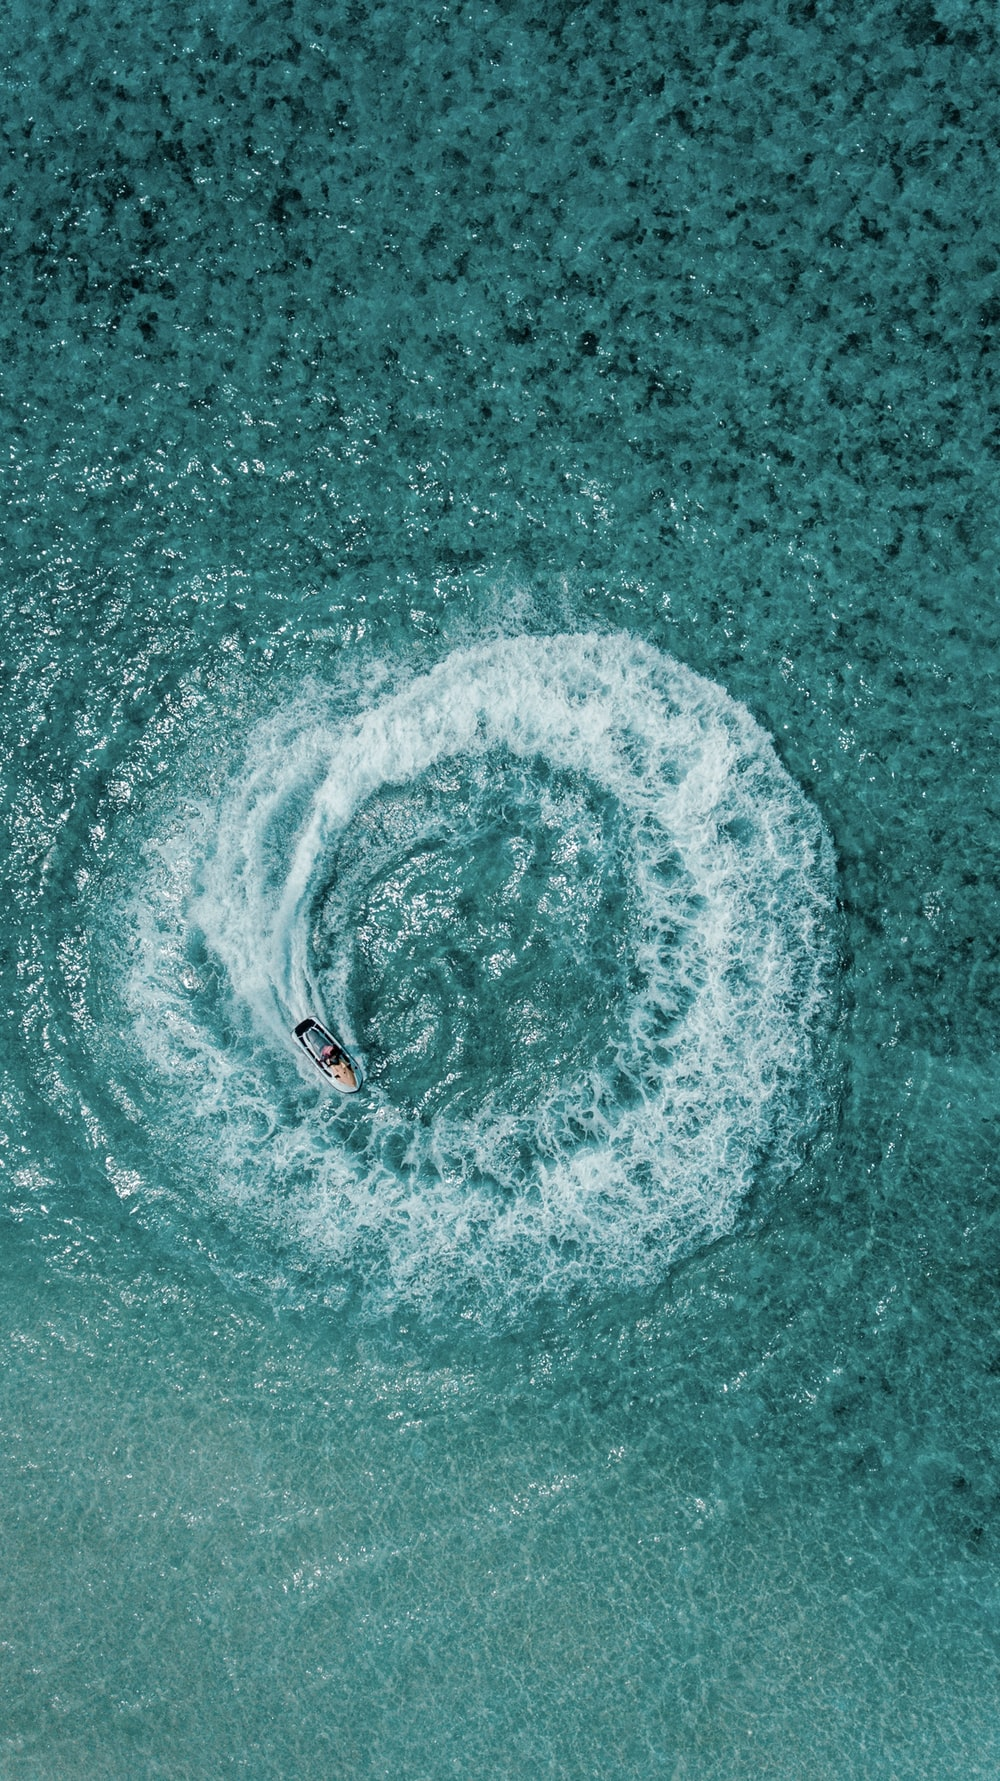 aerial shot person riding on personal watercraft